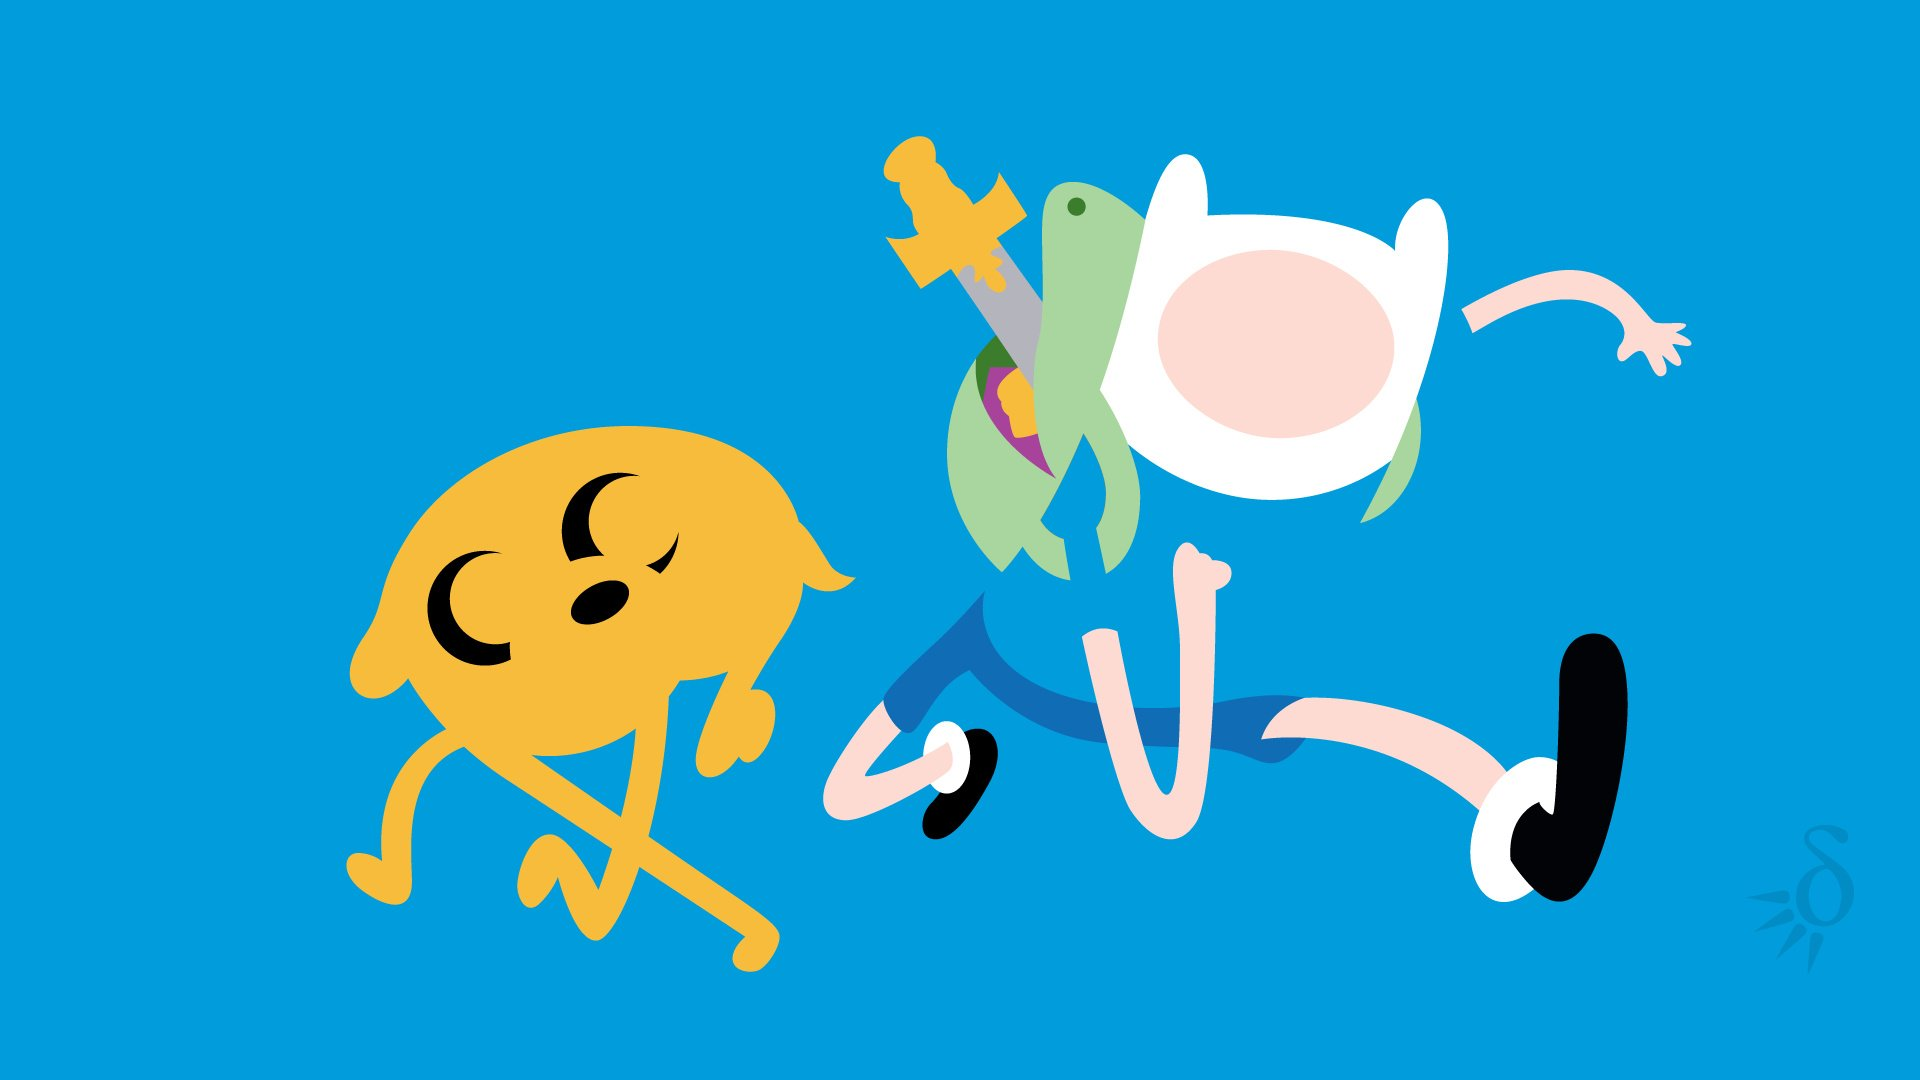 Finn And Jake Wallpaper Adventure time hd wallpapers 1920x1080